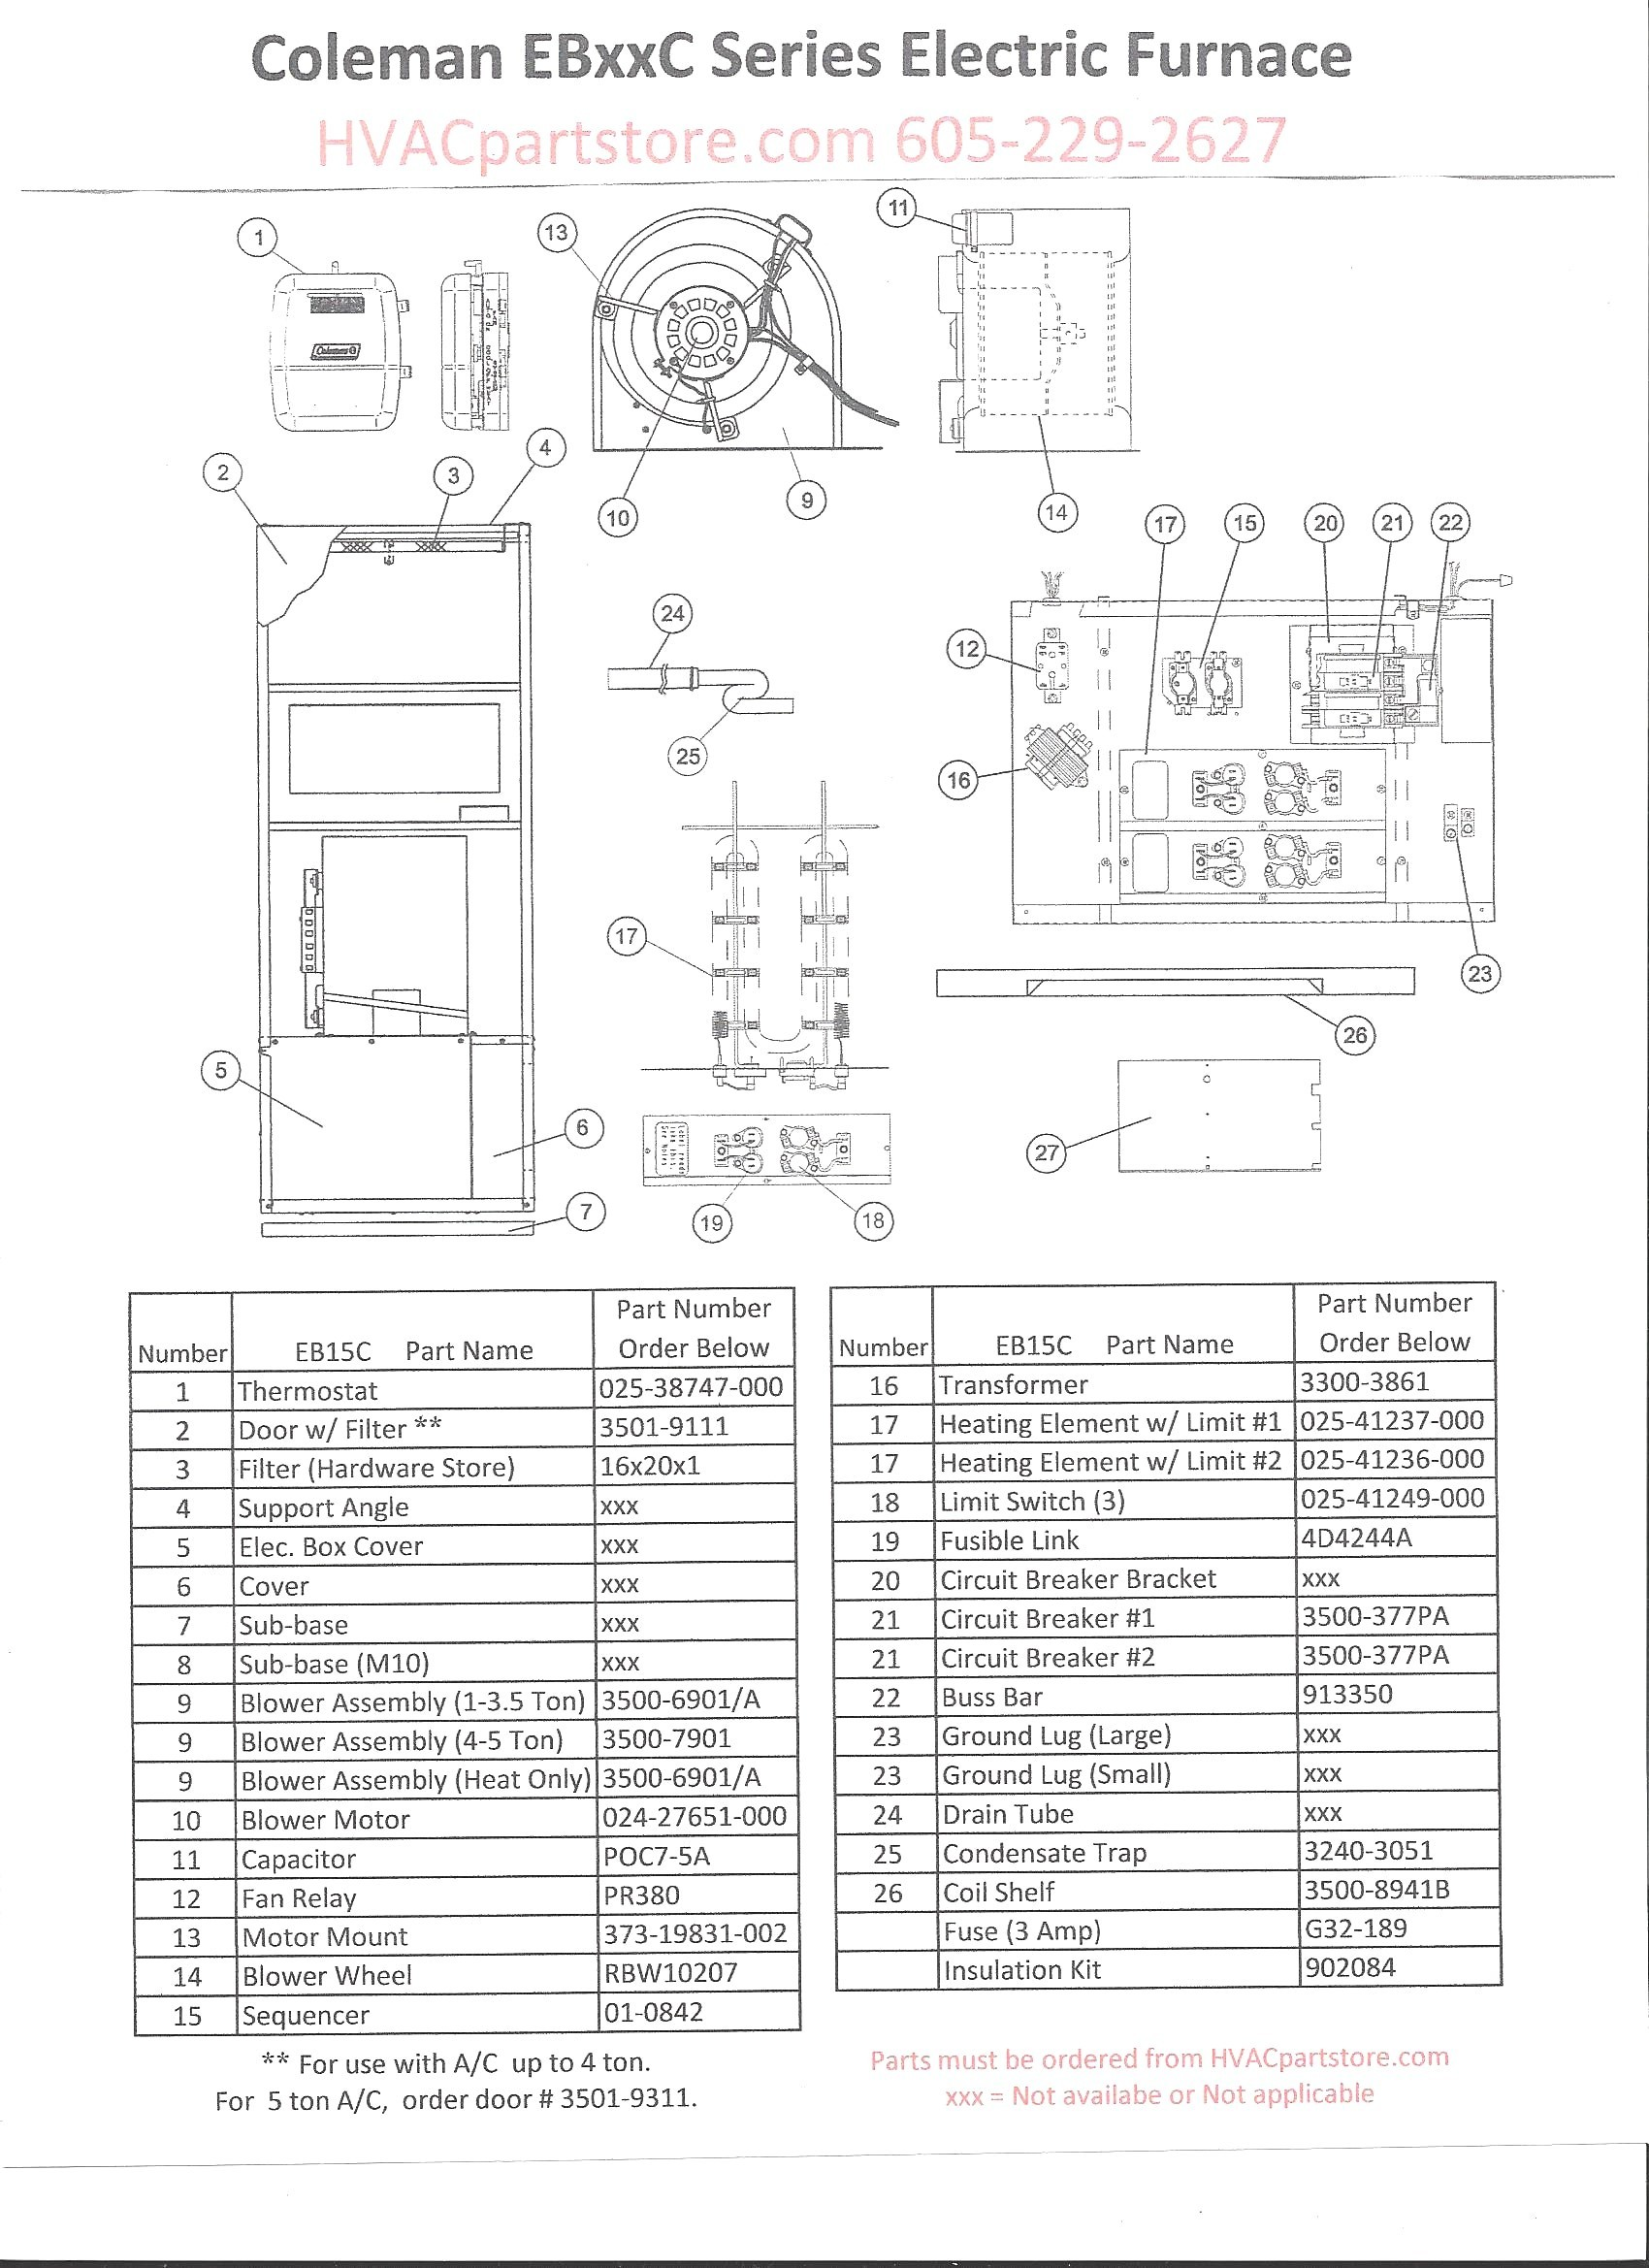 Coleman Wiring Diagram Manual Fresh Coleman Electric Furnace Wiring Diagram Wiring Diagram